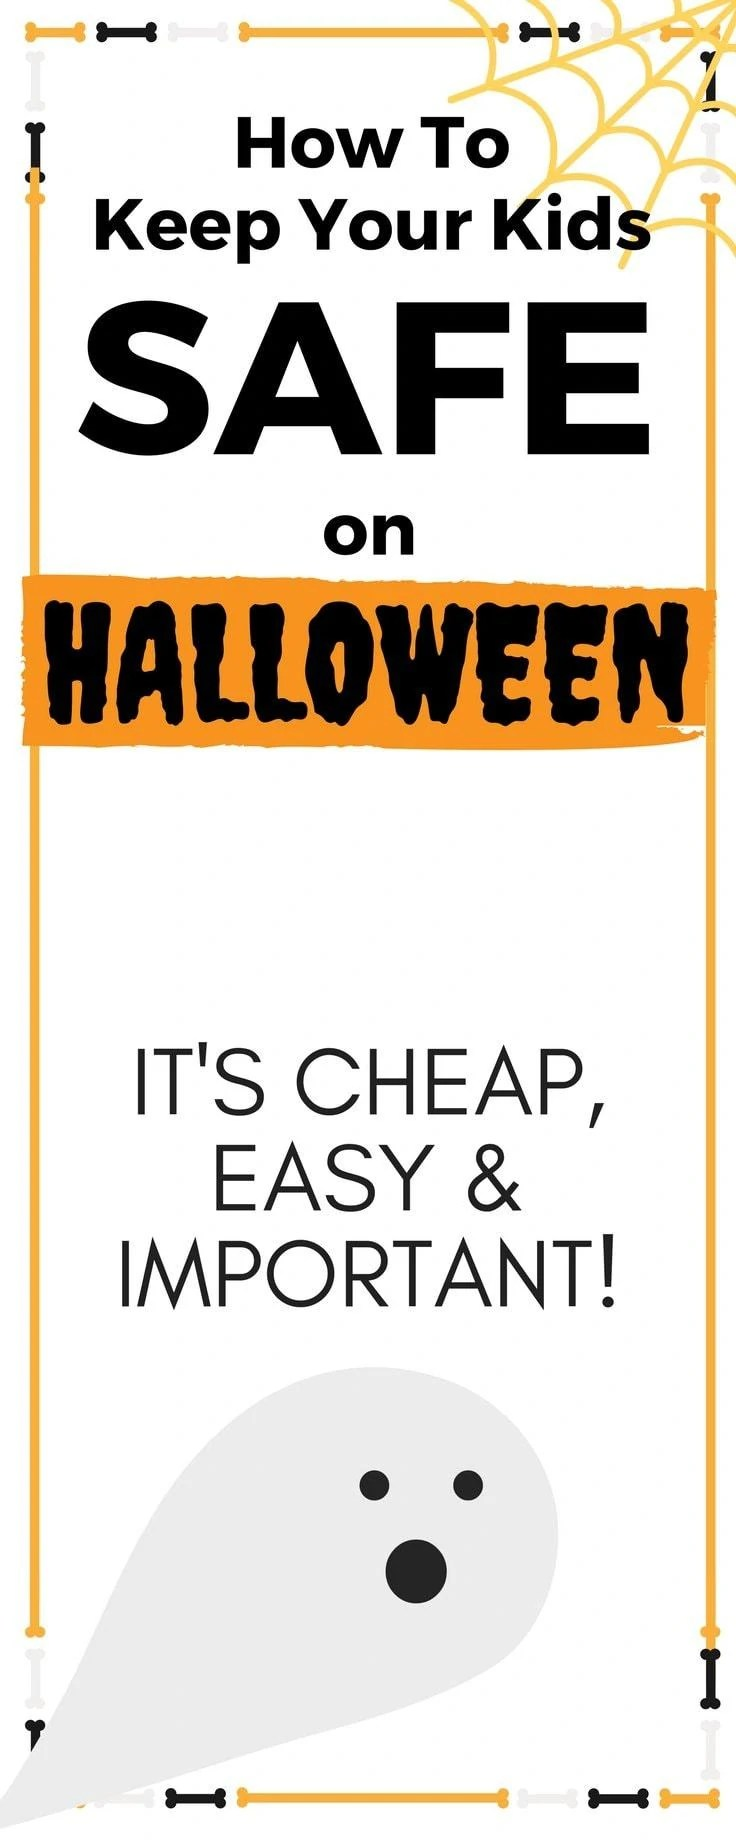 Must read Halloween safety tips for your kids! #halloween #halloweensafety #safetytips #halloweensafetytipsforkids